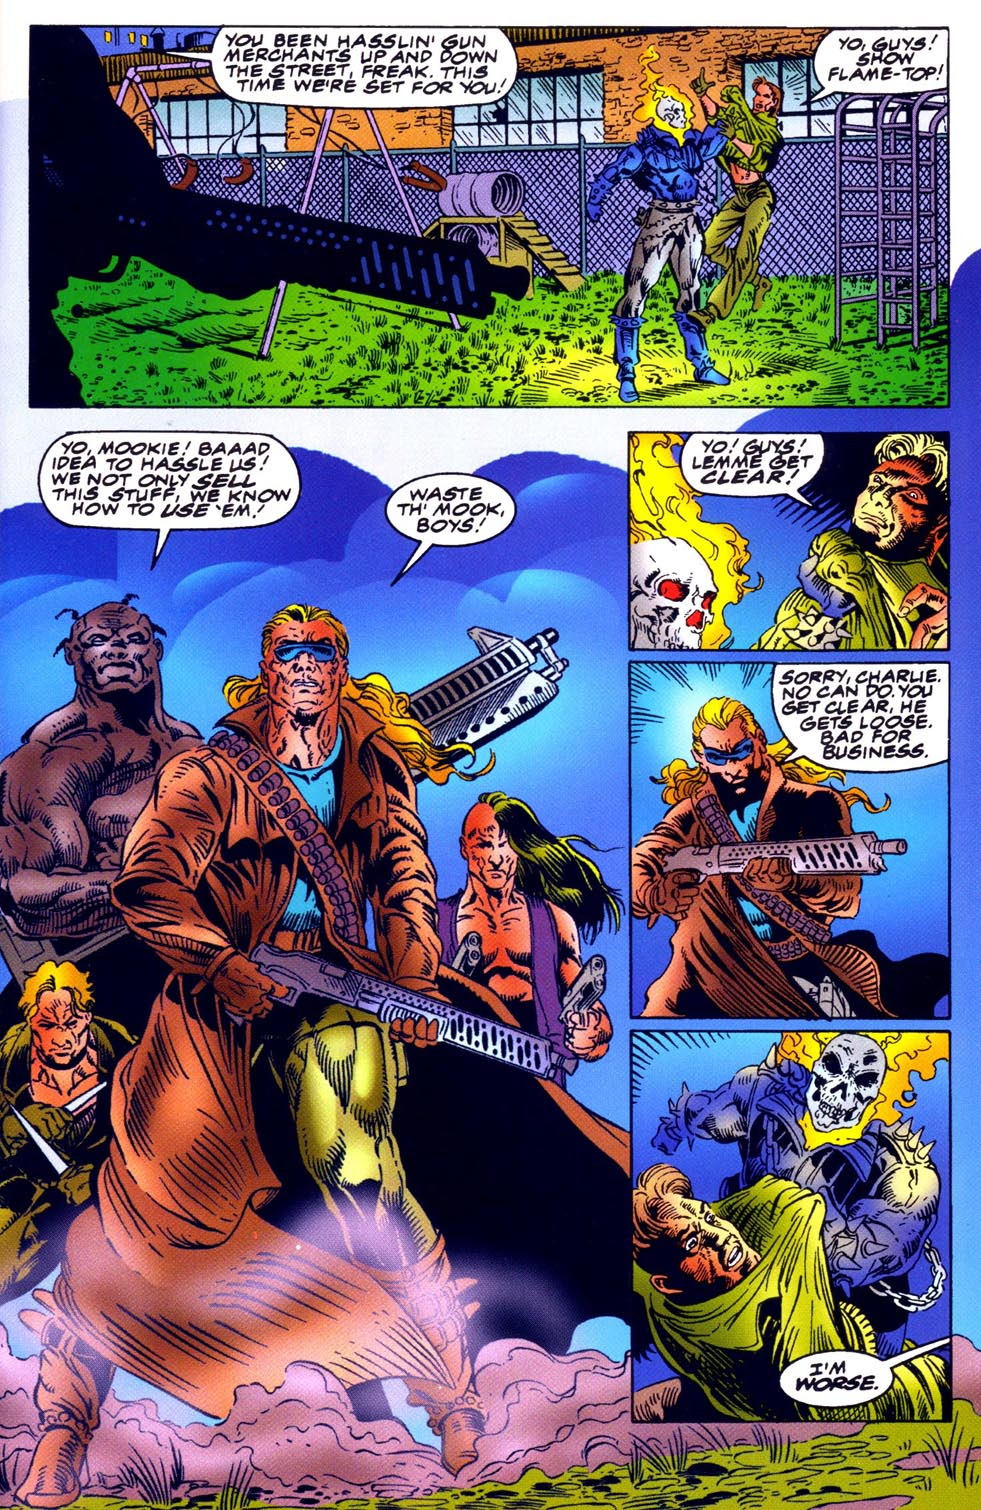 Read online Double Edge comic -  Issue # Issue Omega - 14